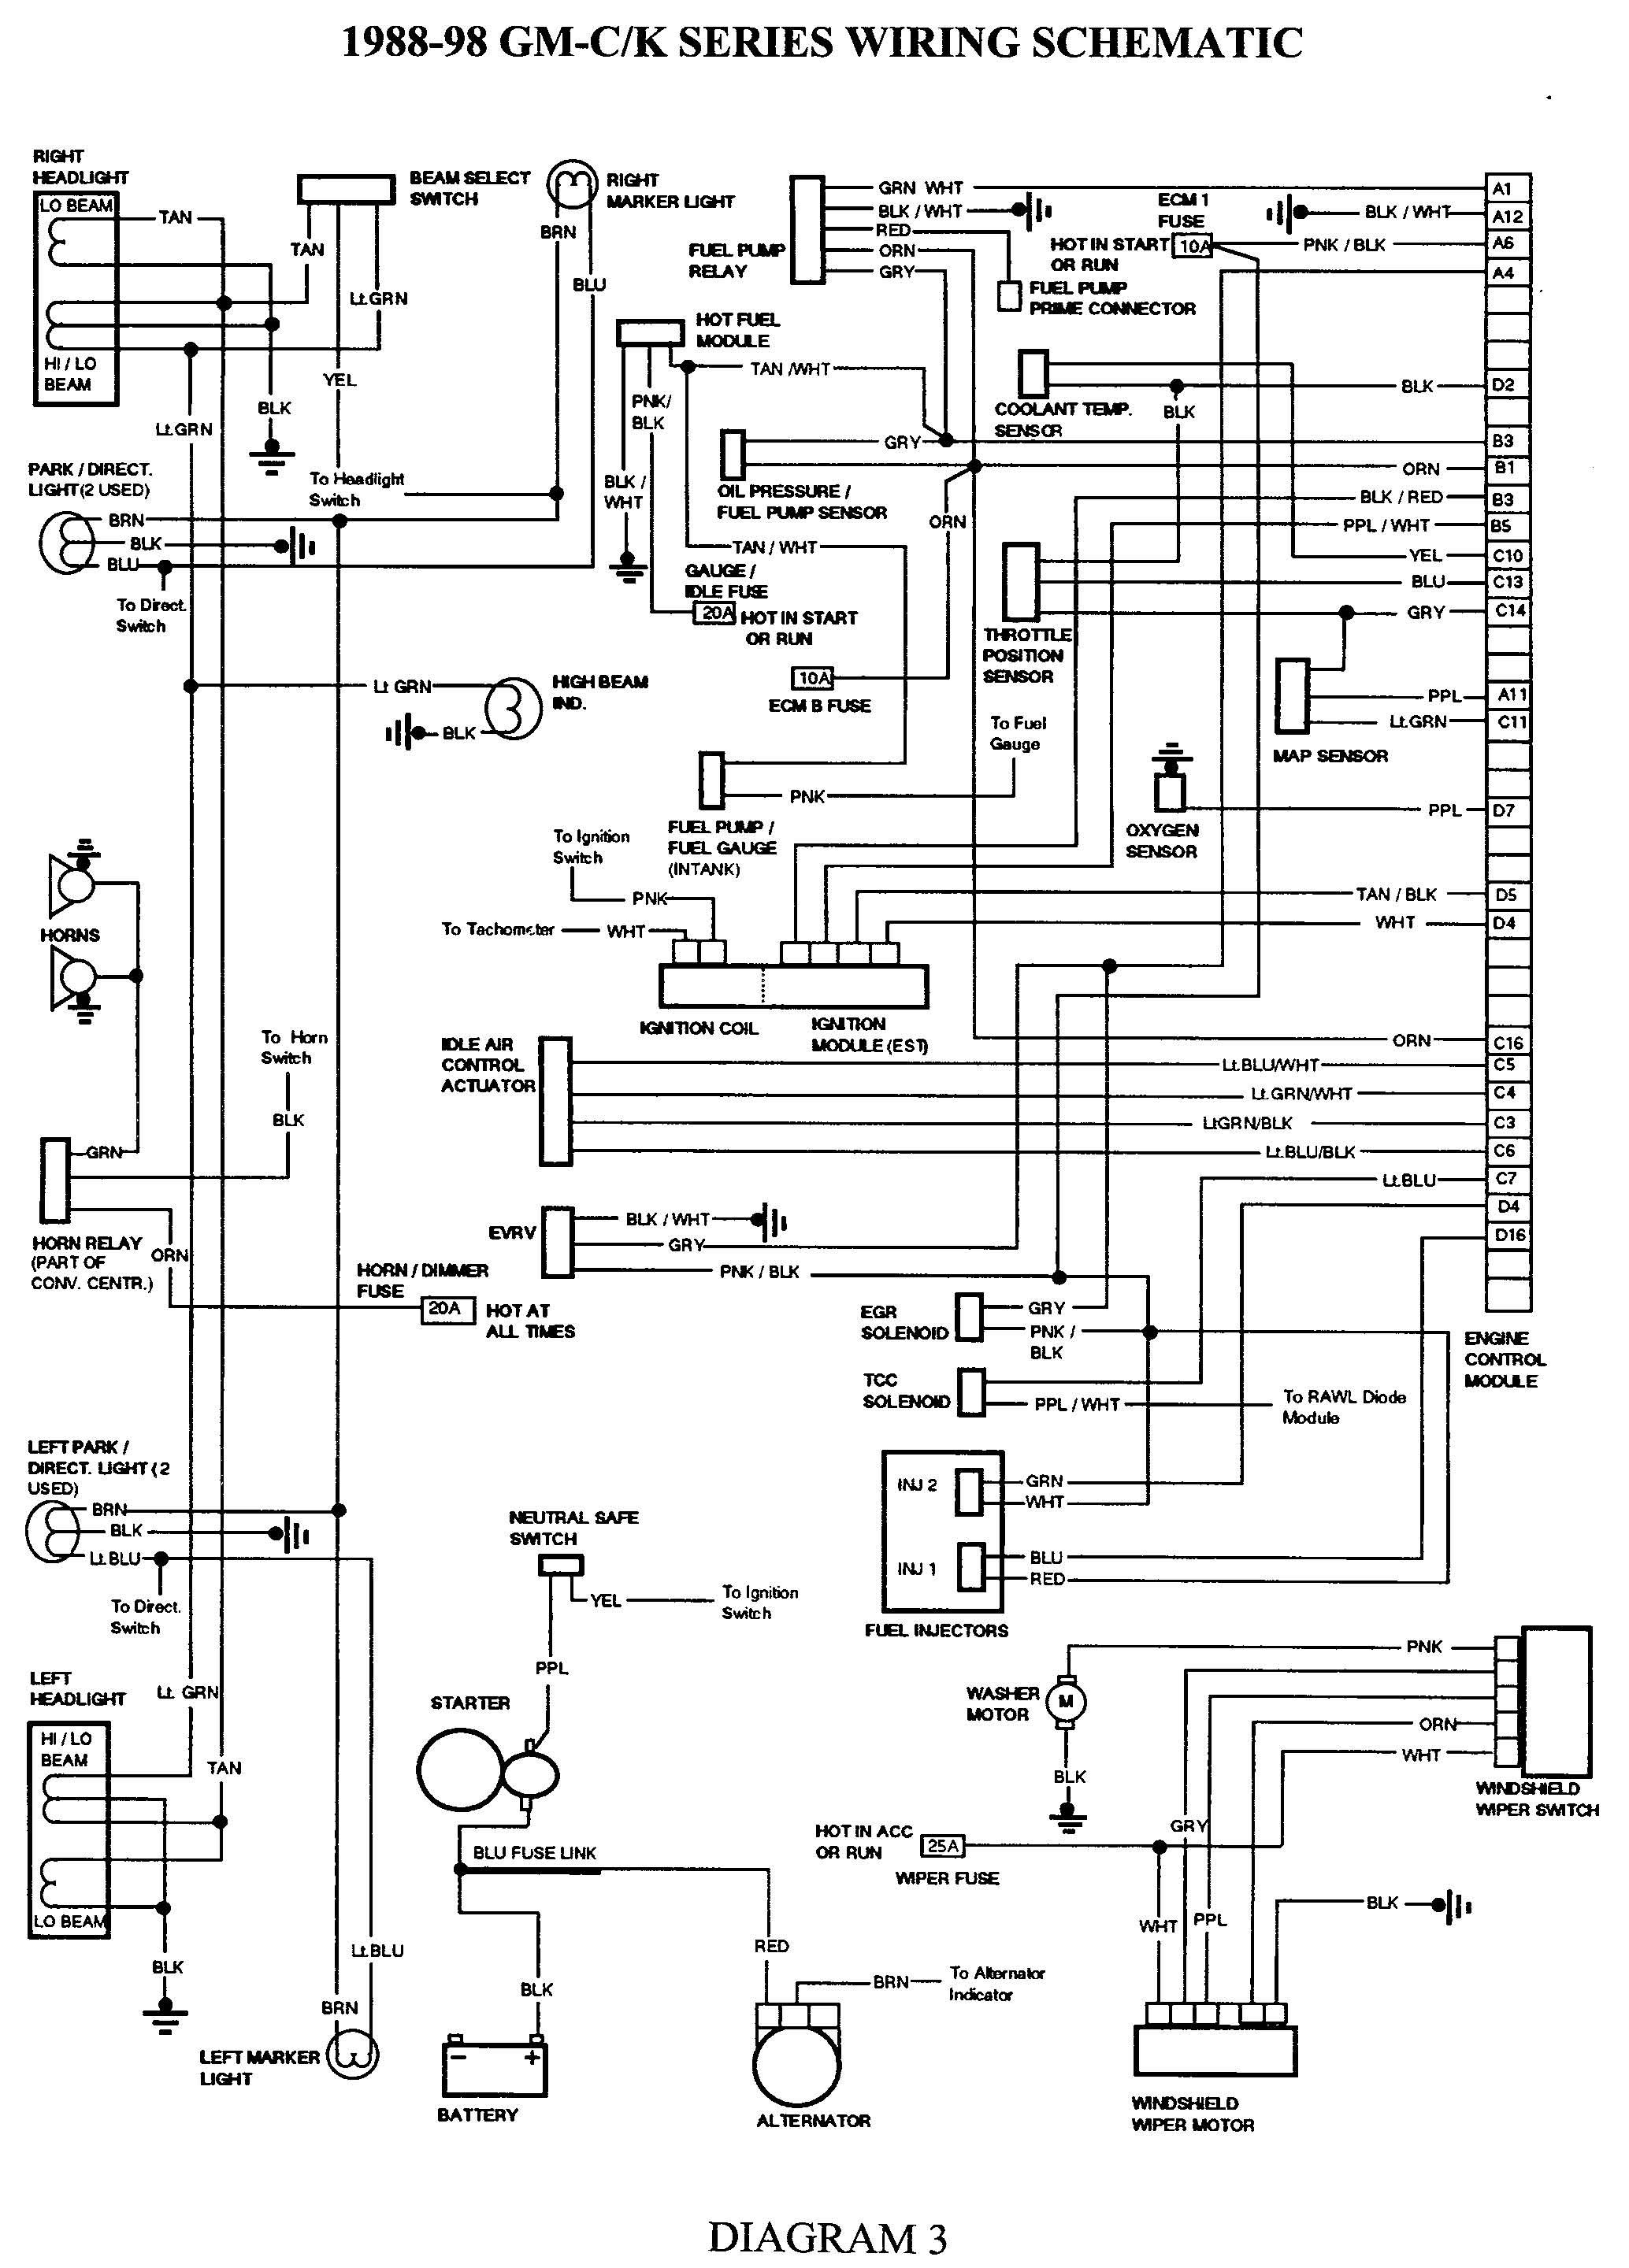 Chevy S10 Wiring Harness Diagram Land 2003 Gmc Sierra 1500 Truck Diagrams On Gm 88 98 Kc Lights